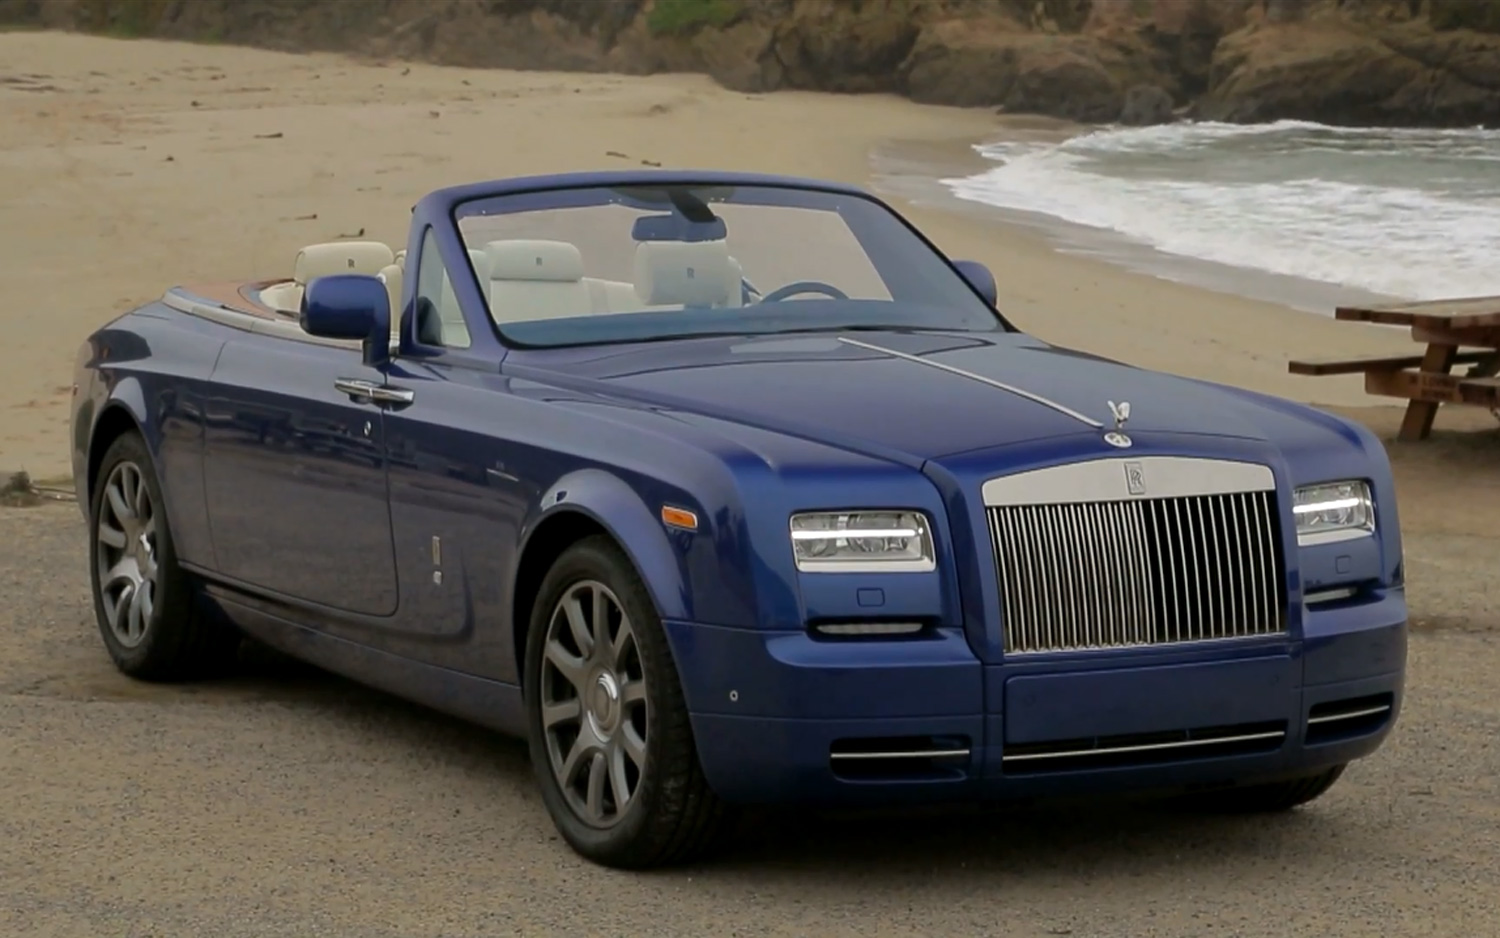 2013 Rolls royce Phantom #15